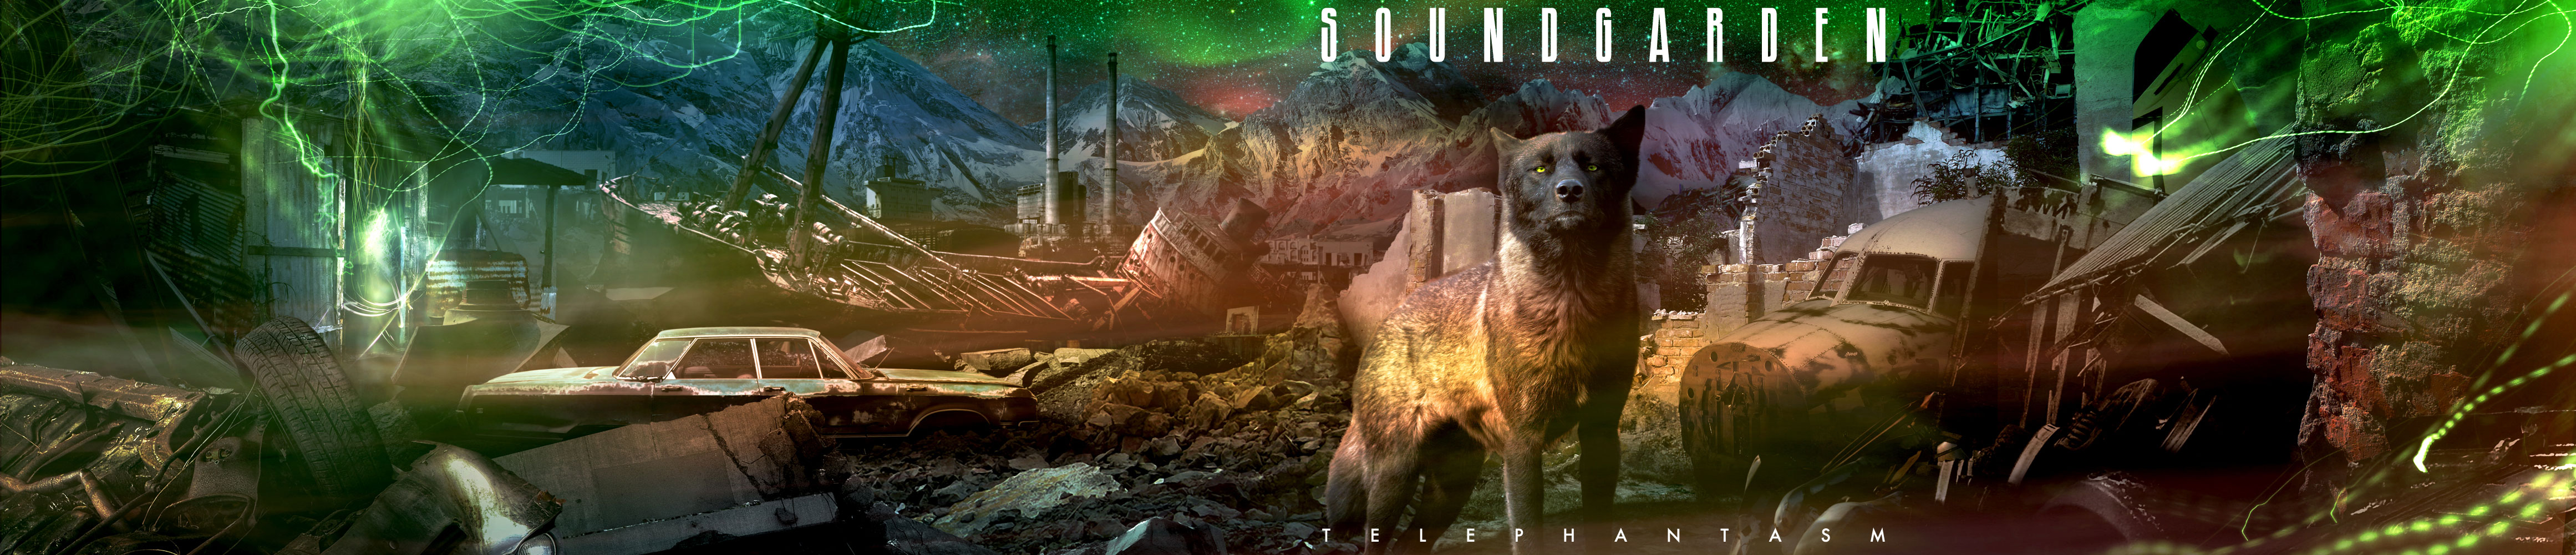 Soundgarden Reveal Telephantasm Artwork Espyrock